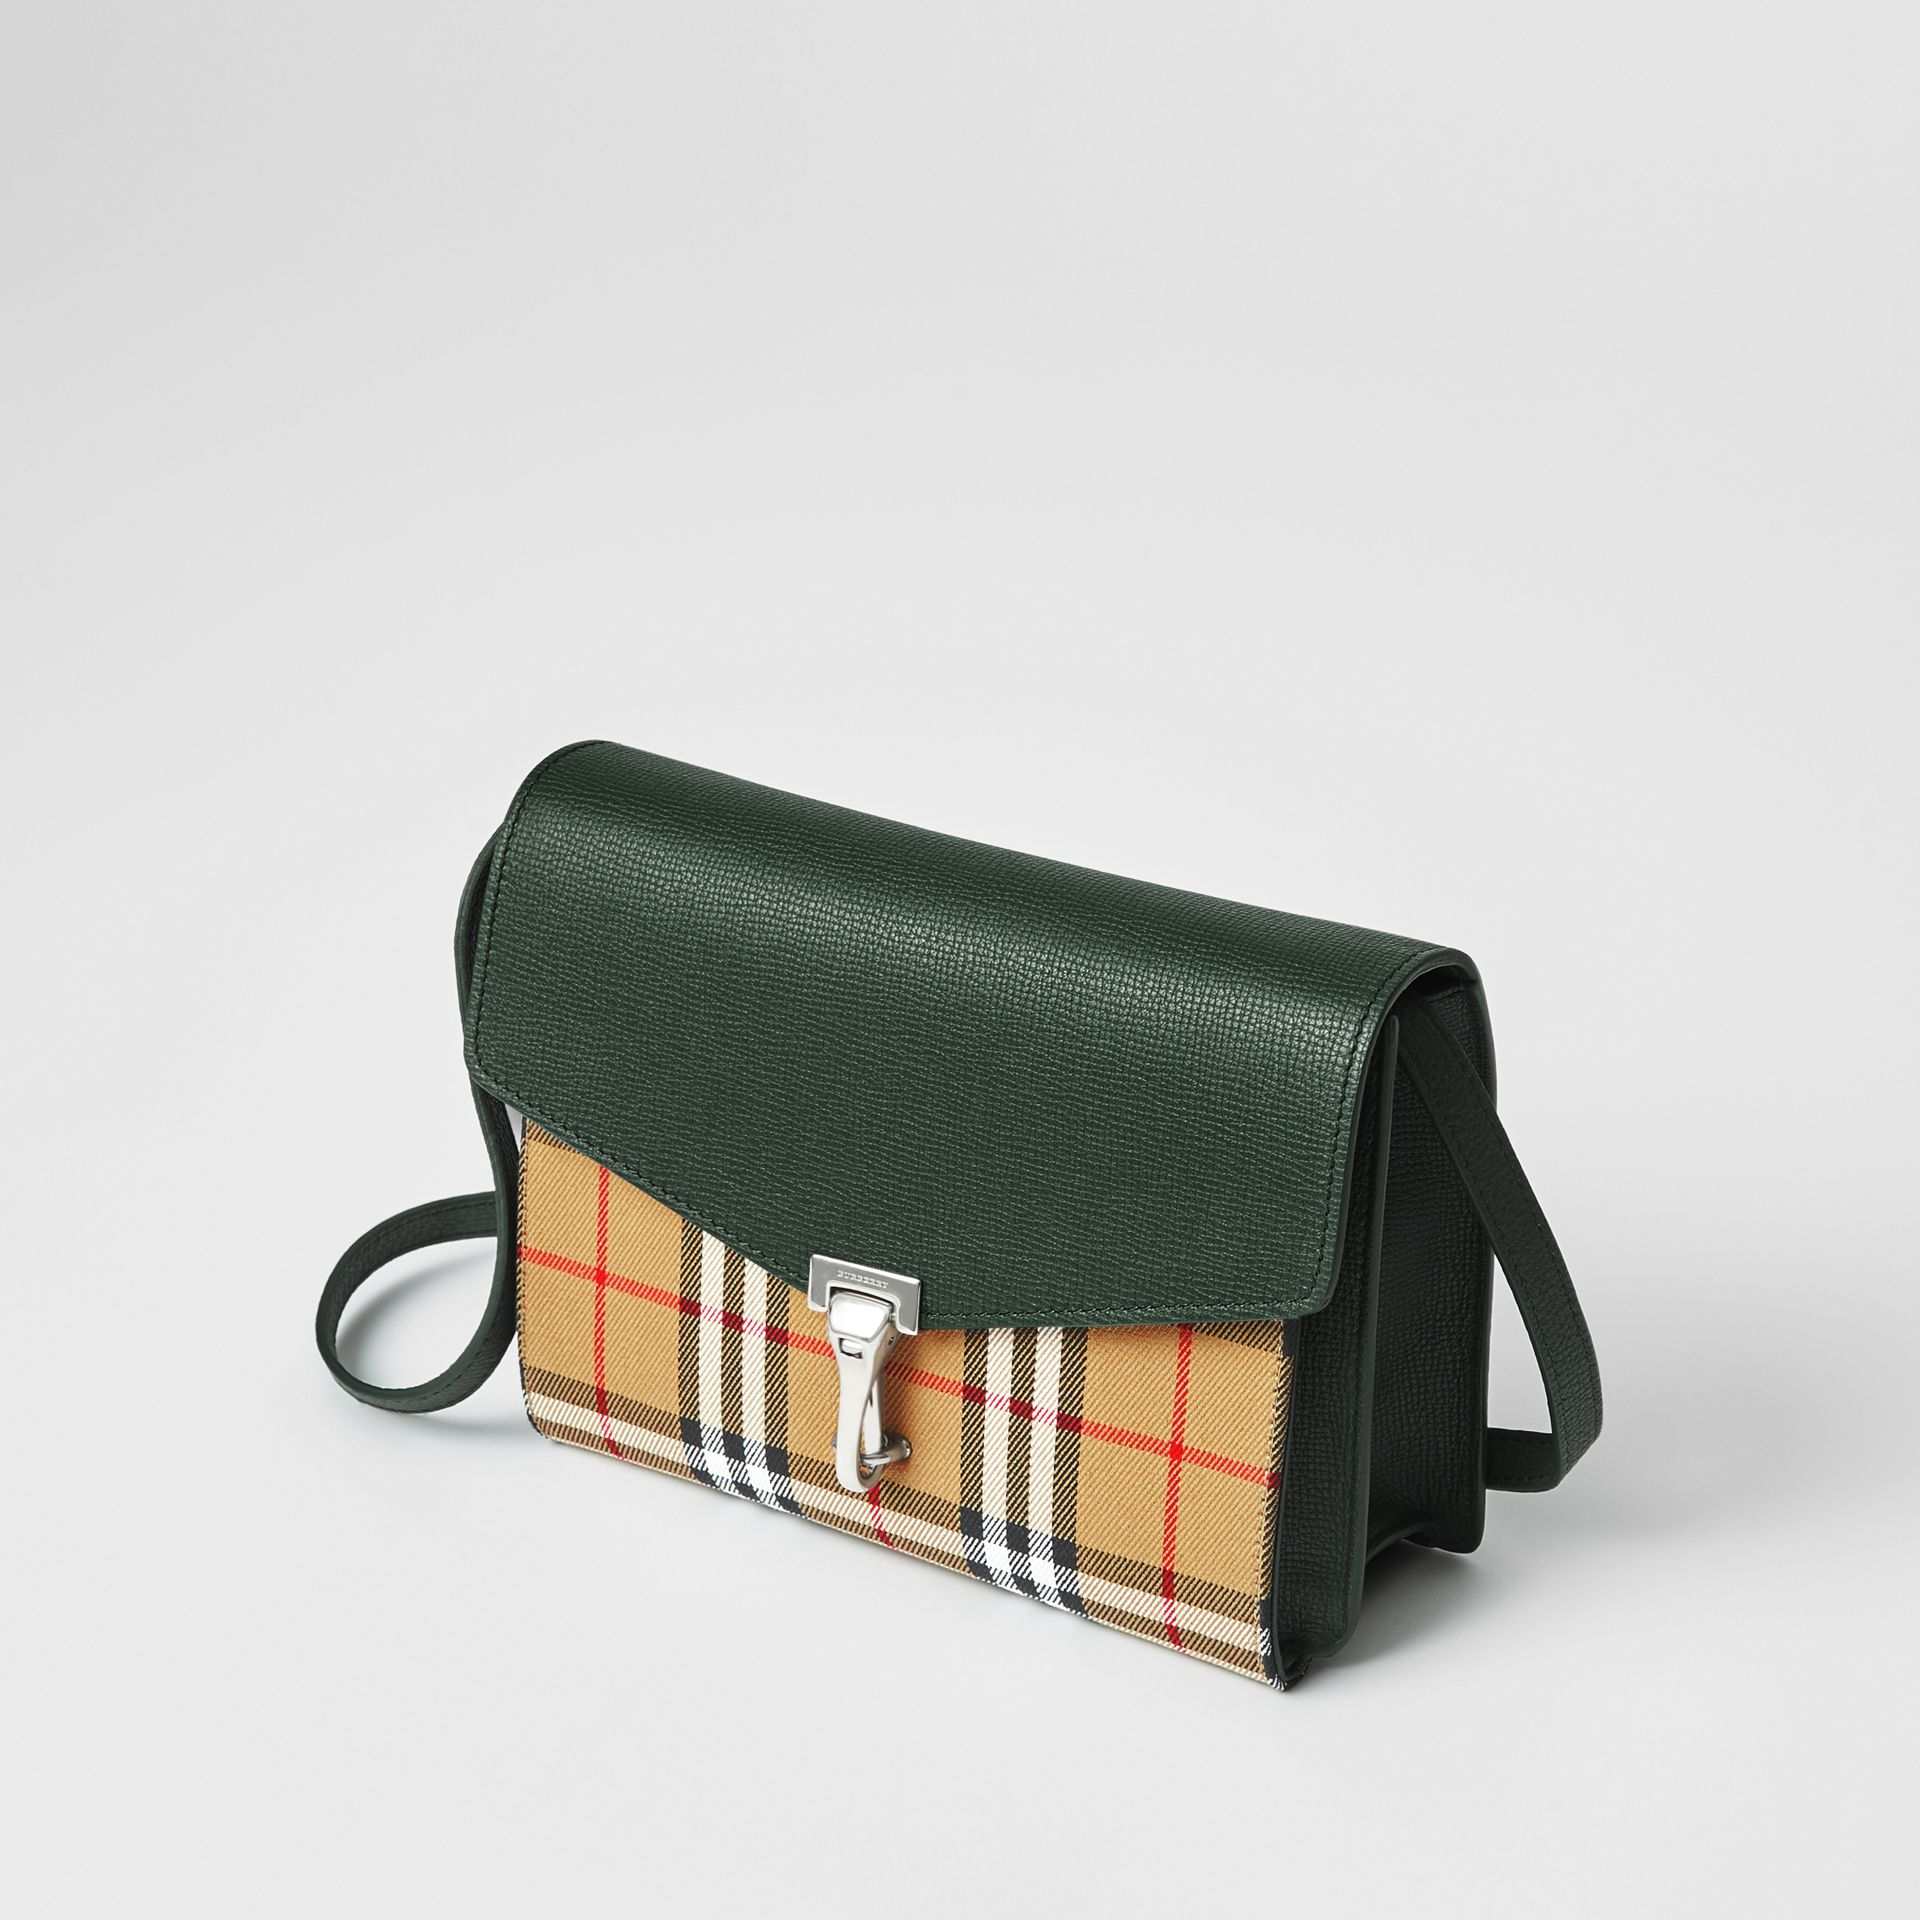 Small Vintage Check and Leather Crossbody Bag in Green - Women | Burberry Australia - gallery image 4